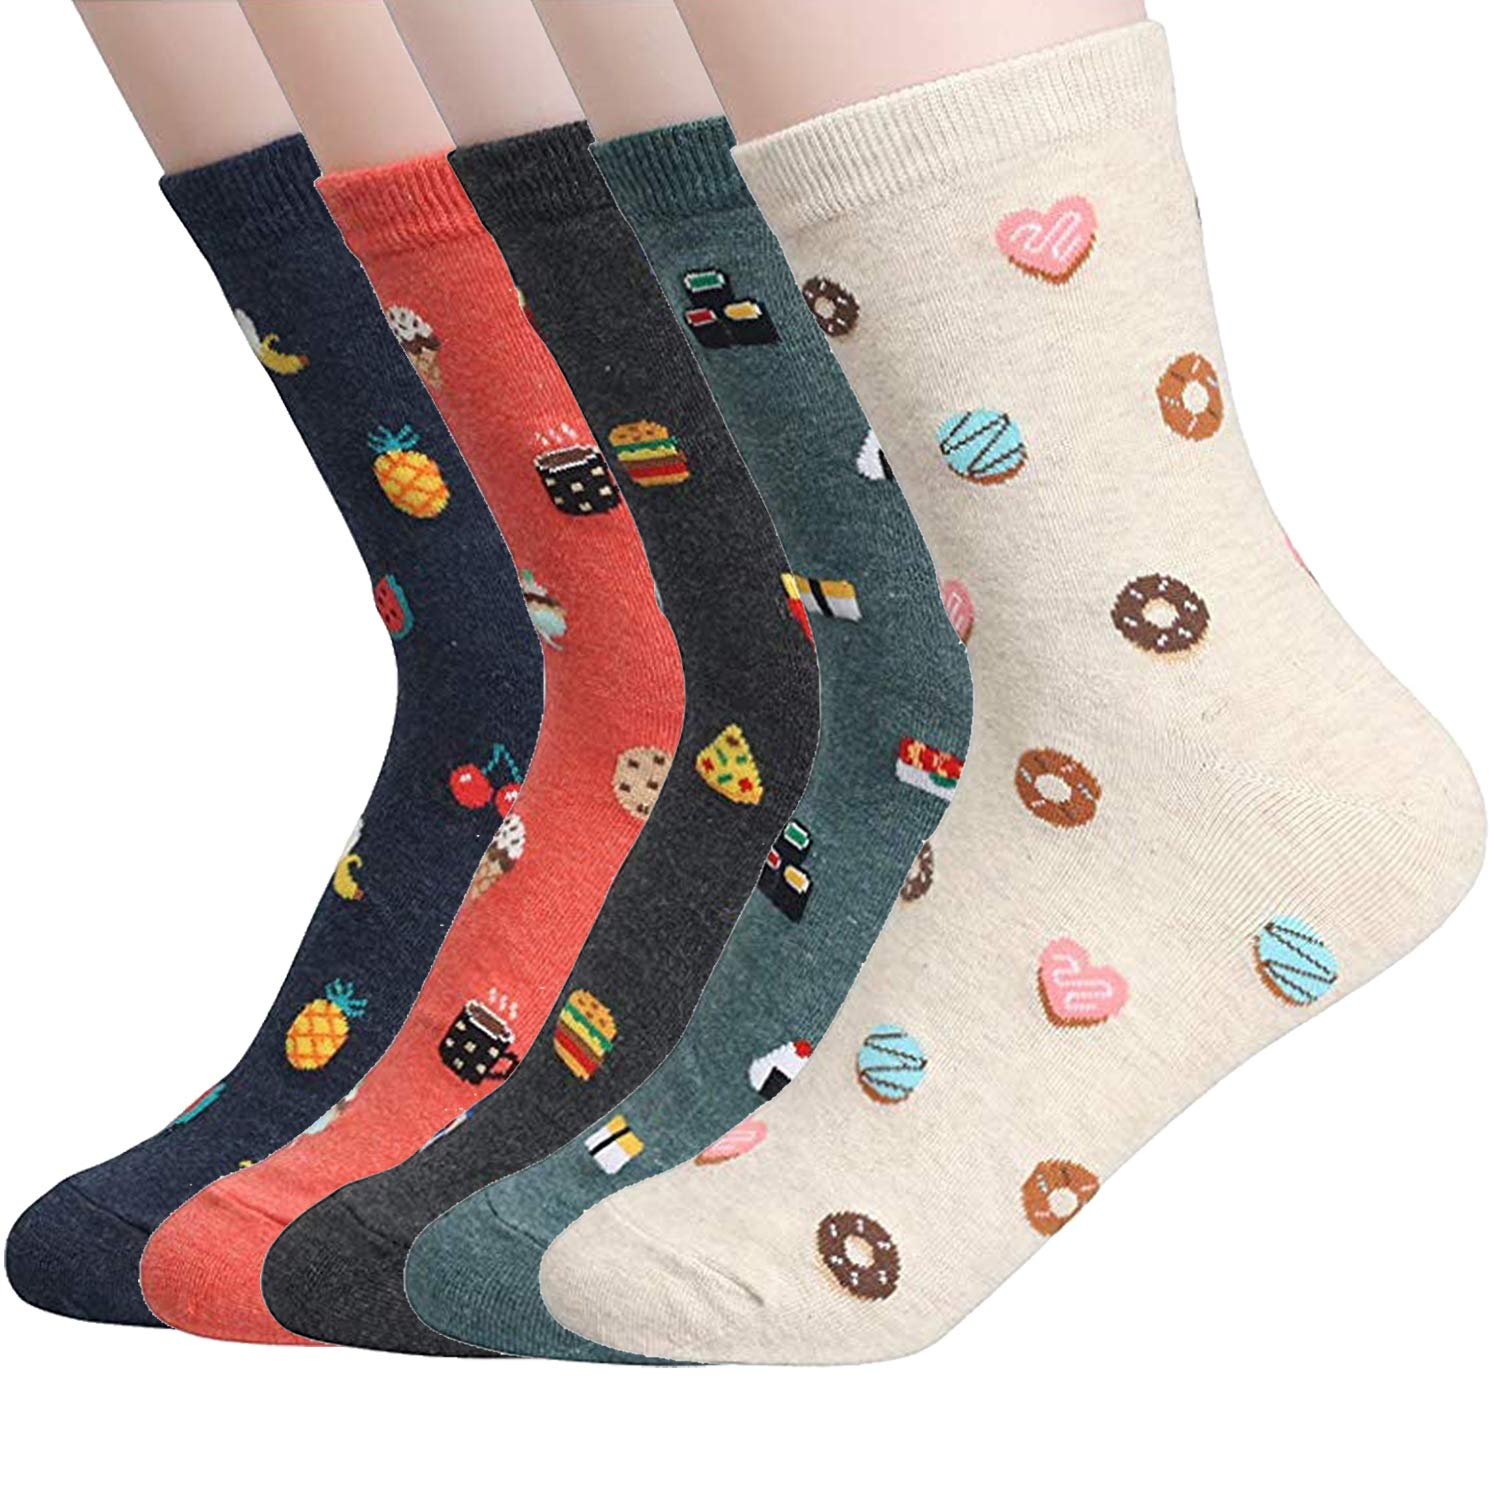 Womens Casual Socks Striped and Dot Patterned Good for Gift Idea Value Sets